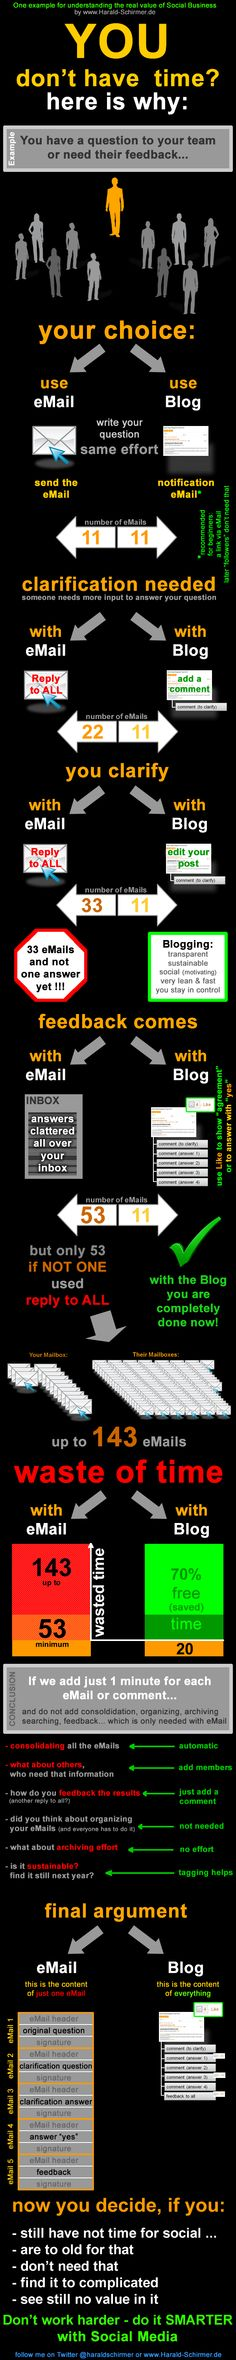 Infographic Social Business value example - one of the best I've seen in a long while, depicting traditional email workflow vs. social business usage of a blog to get work done. Brilliant!